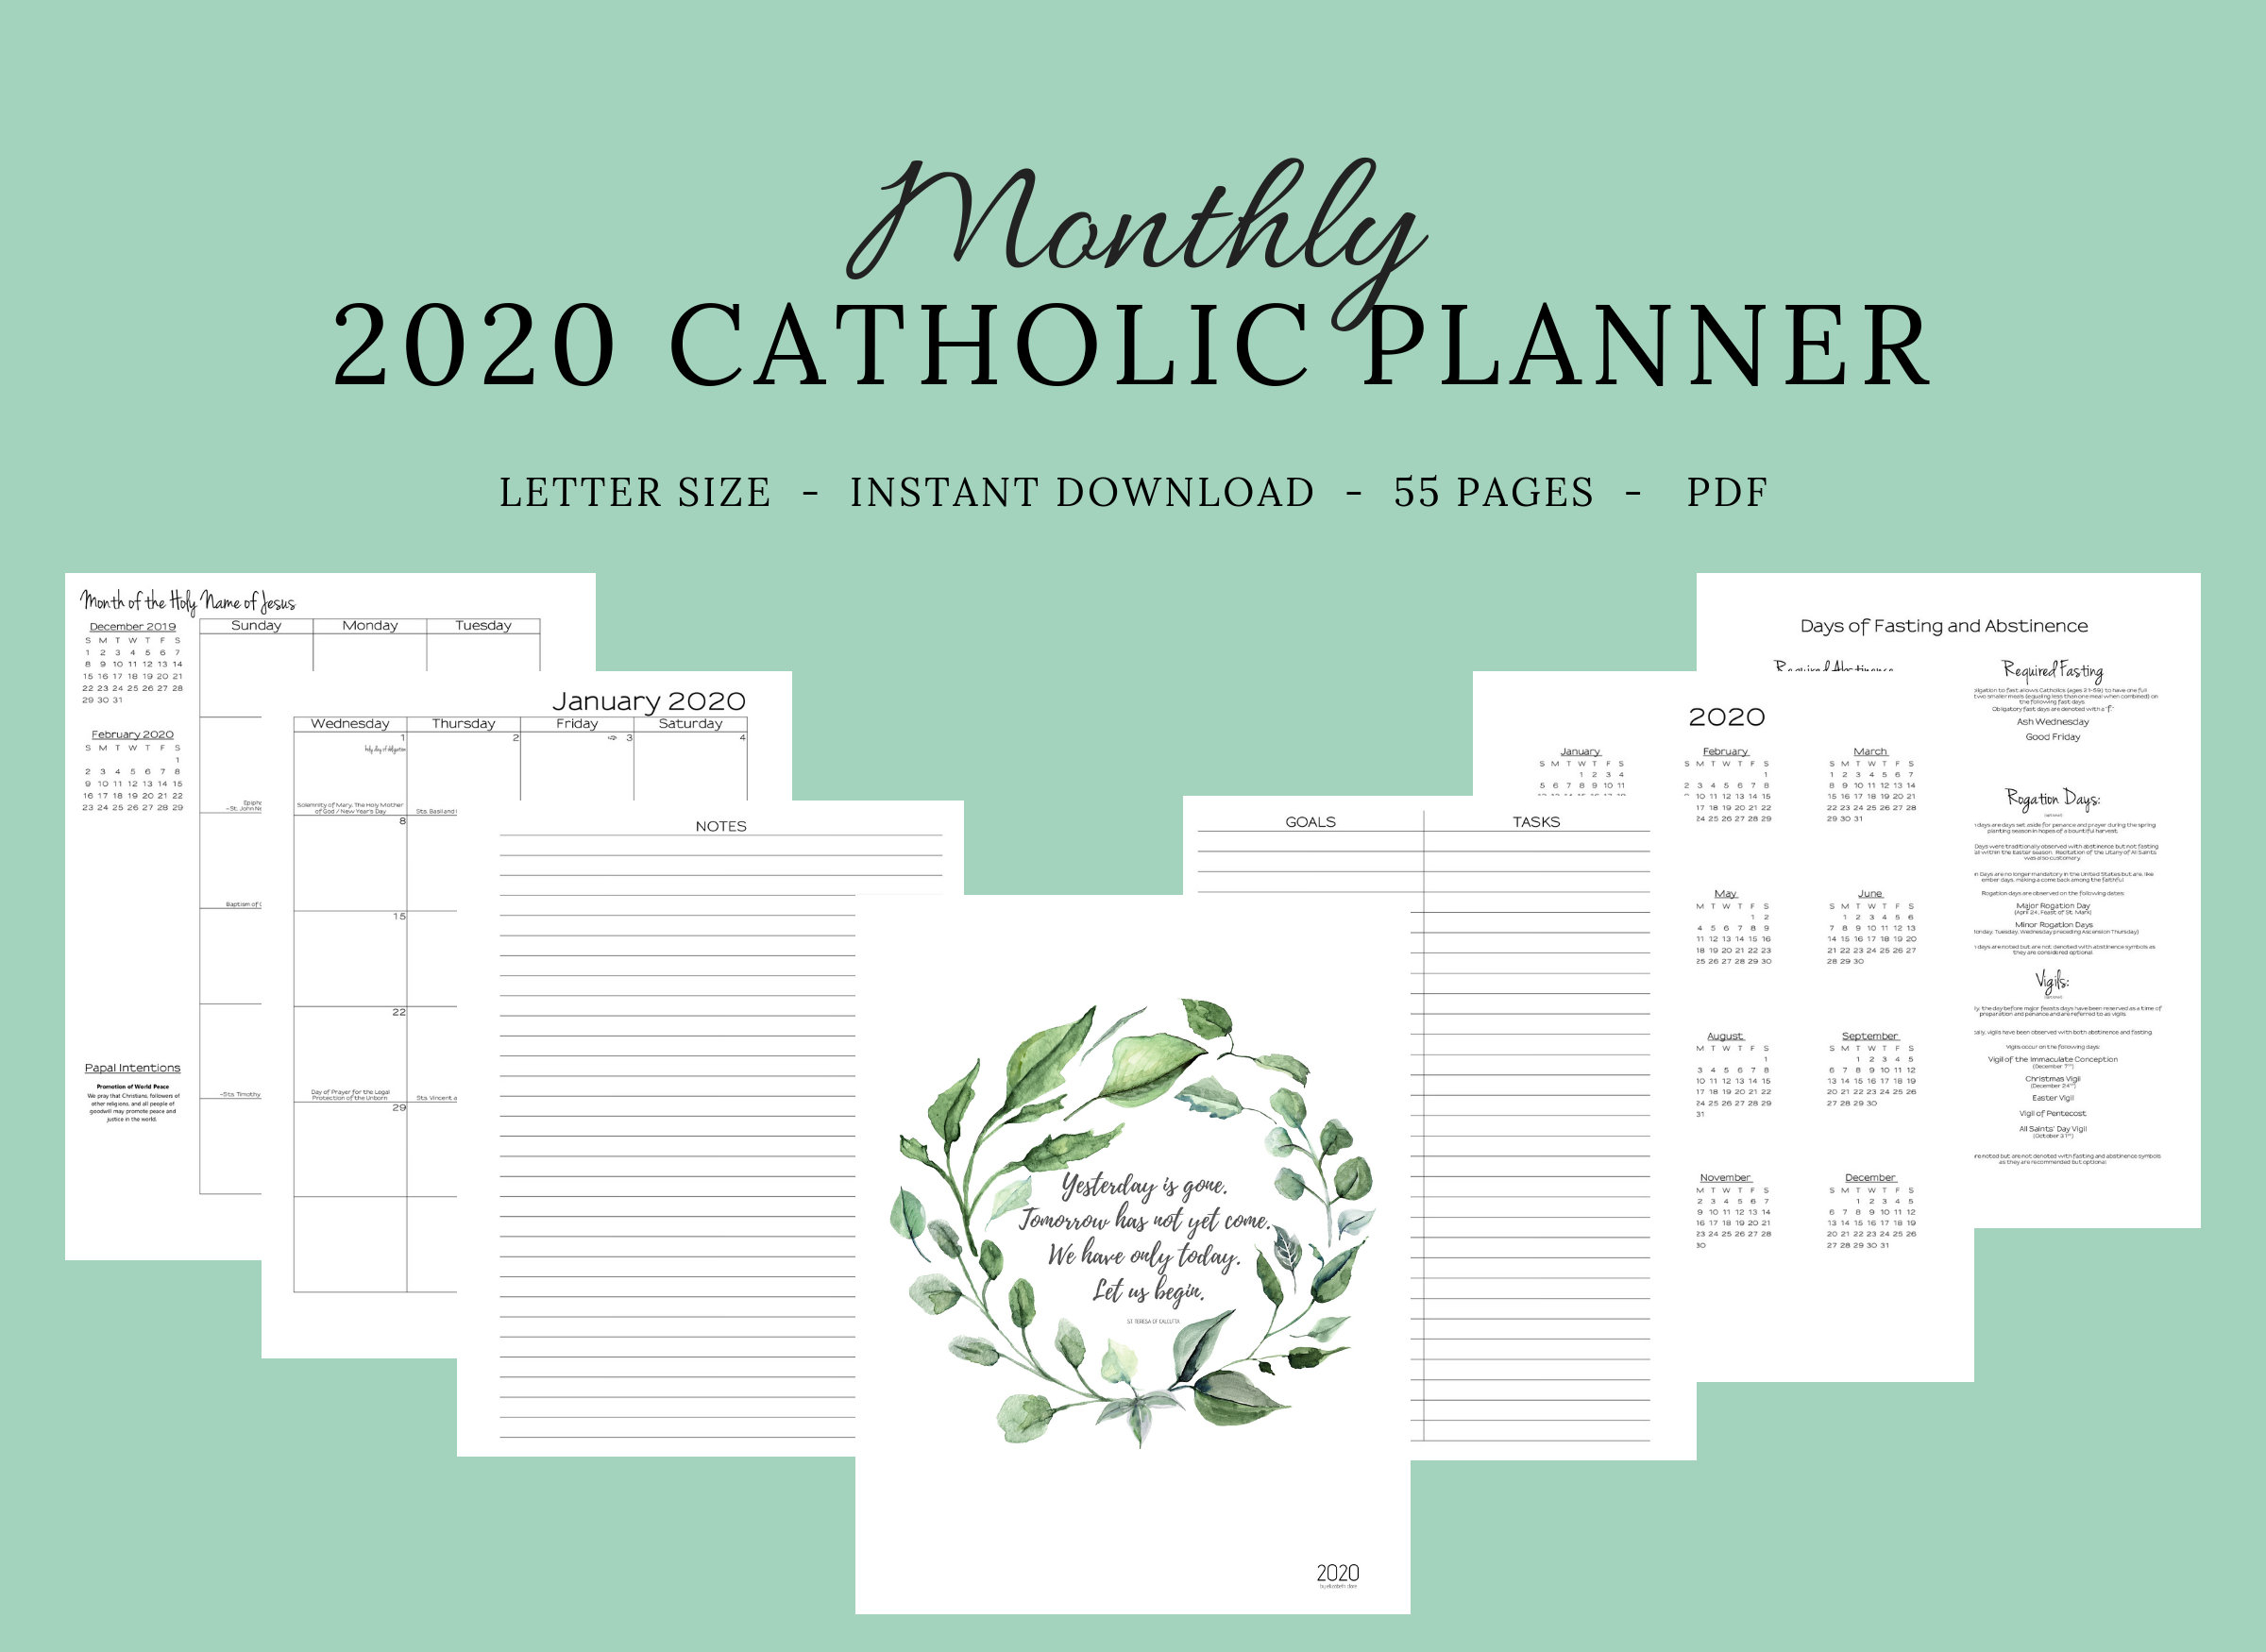 2020 Catholic Planner Monthly Printable: Monthly Planner / Catholic  Liturgical Year Calendar / Printable Catholic Planner / Catholic Woman